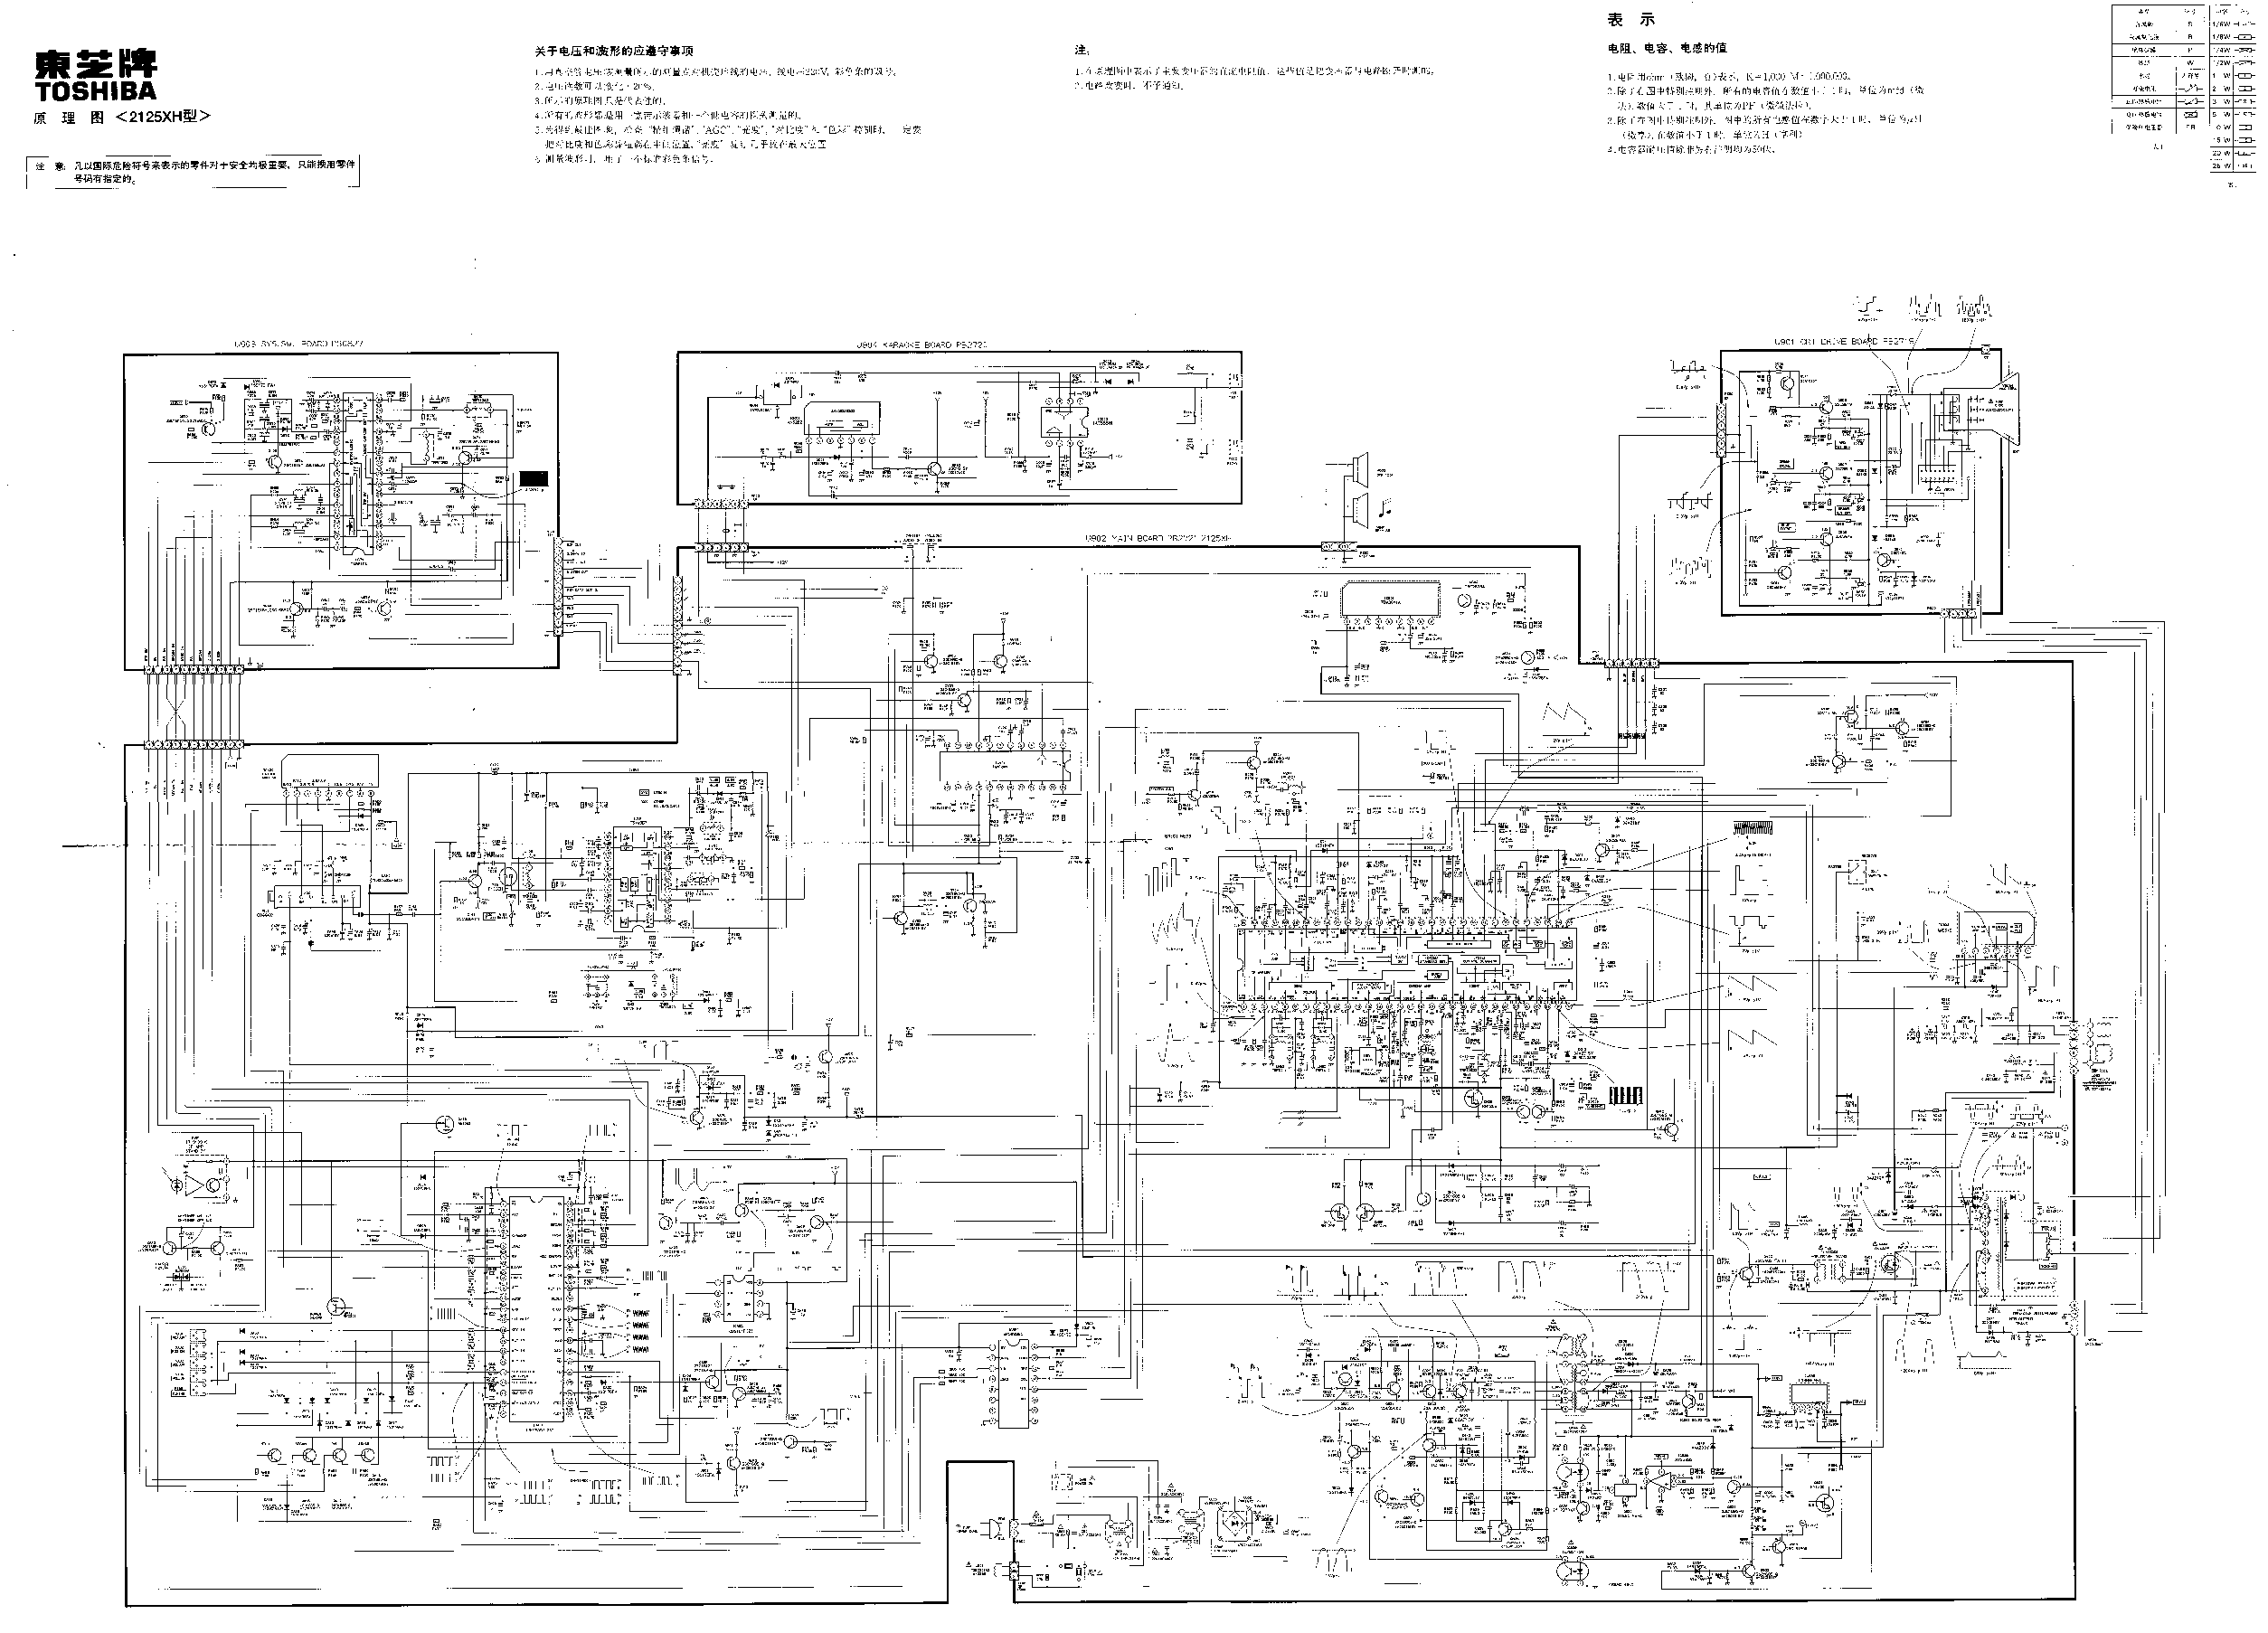 TOSHIBA 65HM167 Service Manual free download, schematics